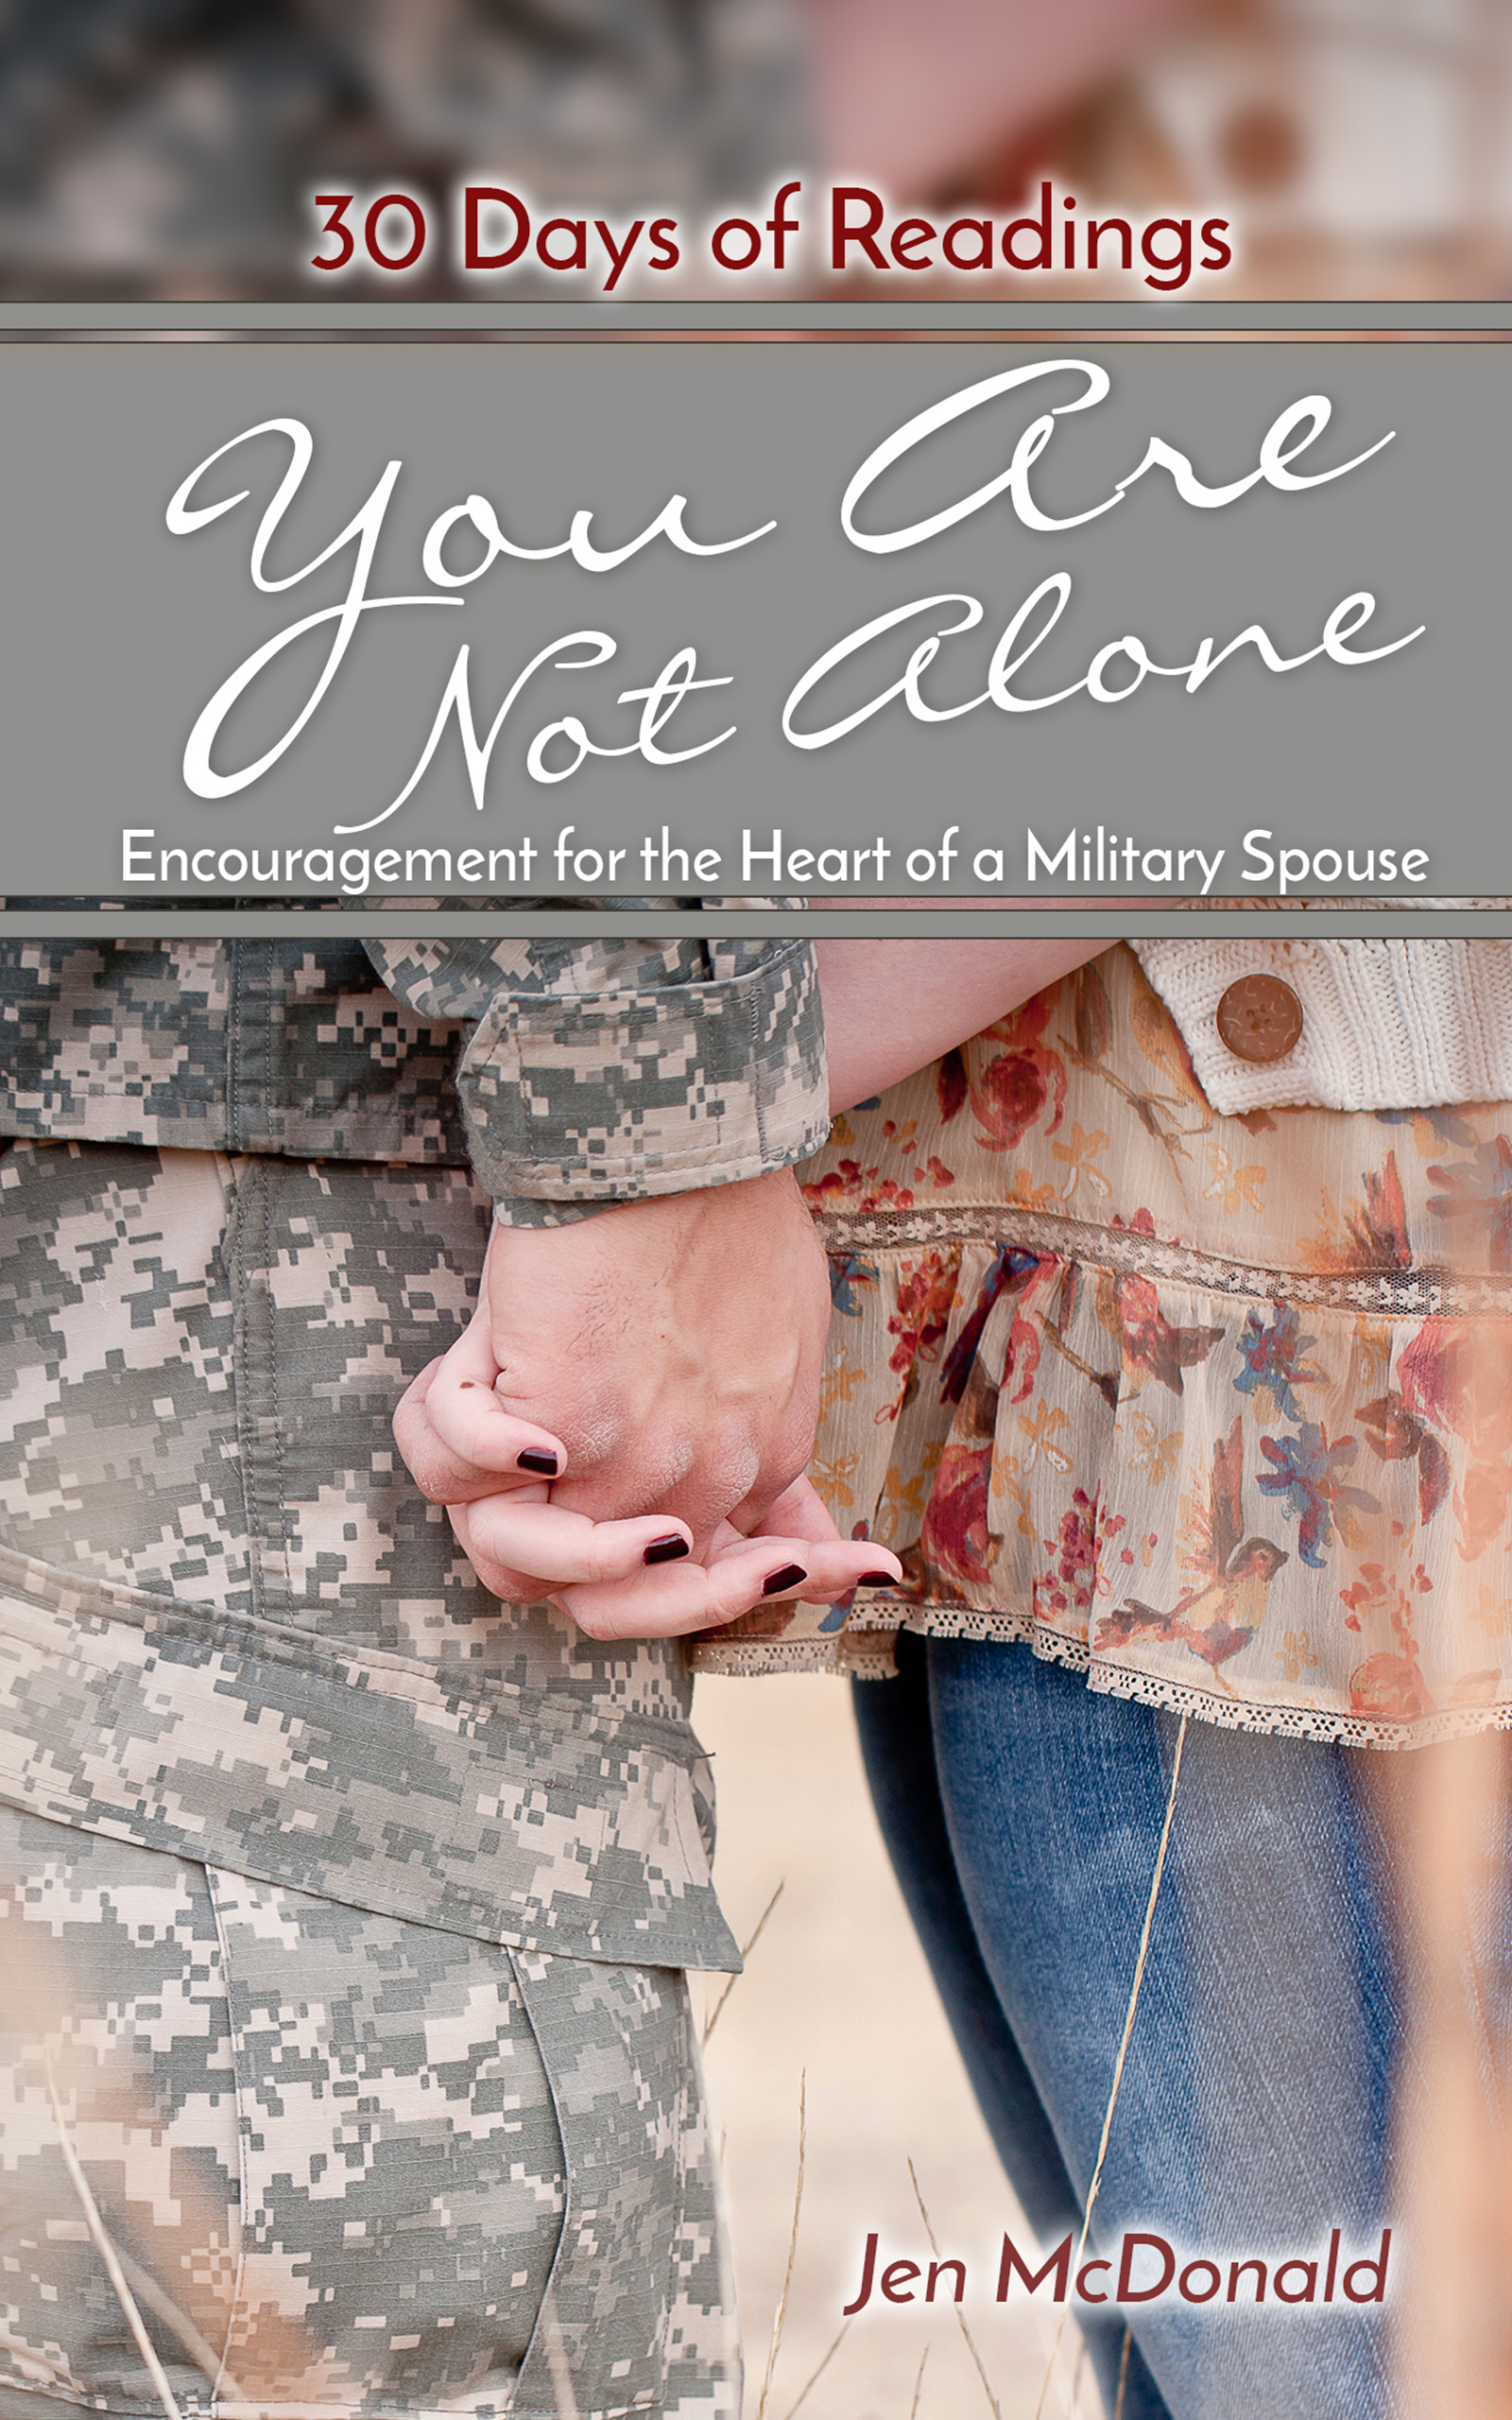 Encouragement for the Heart of the Military Spouse